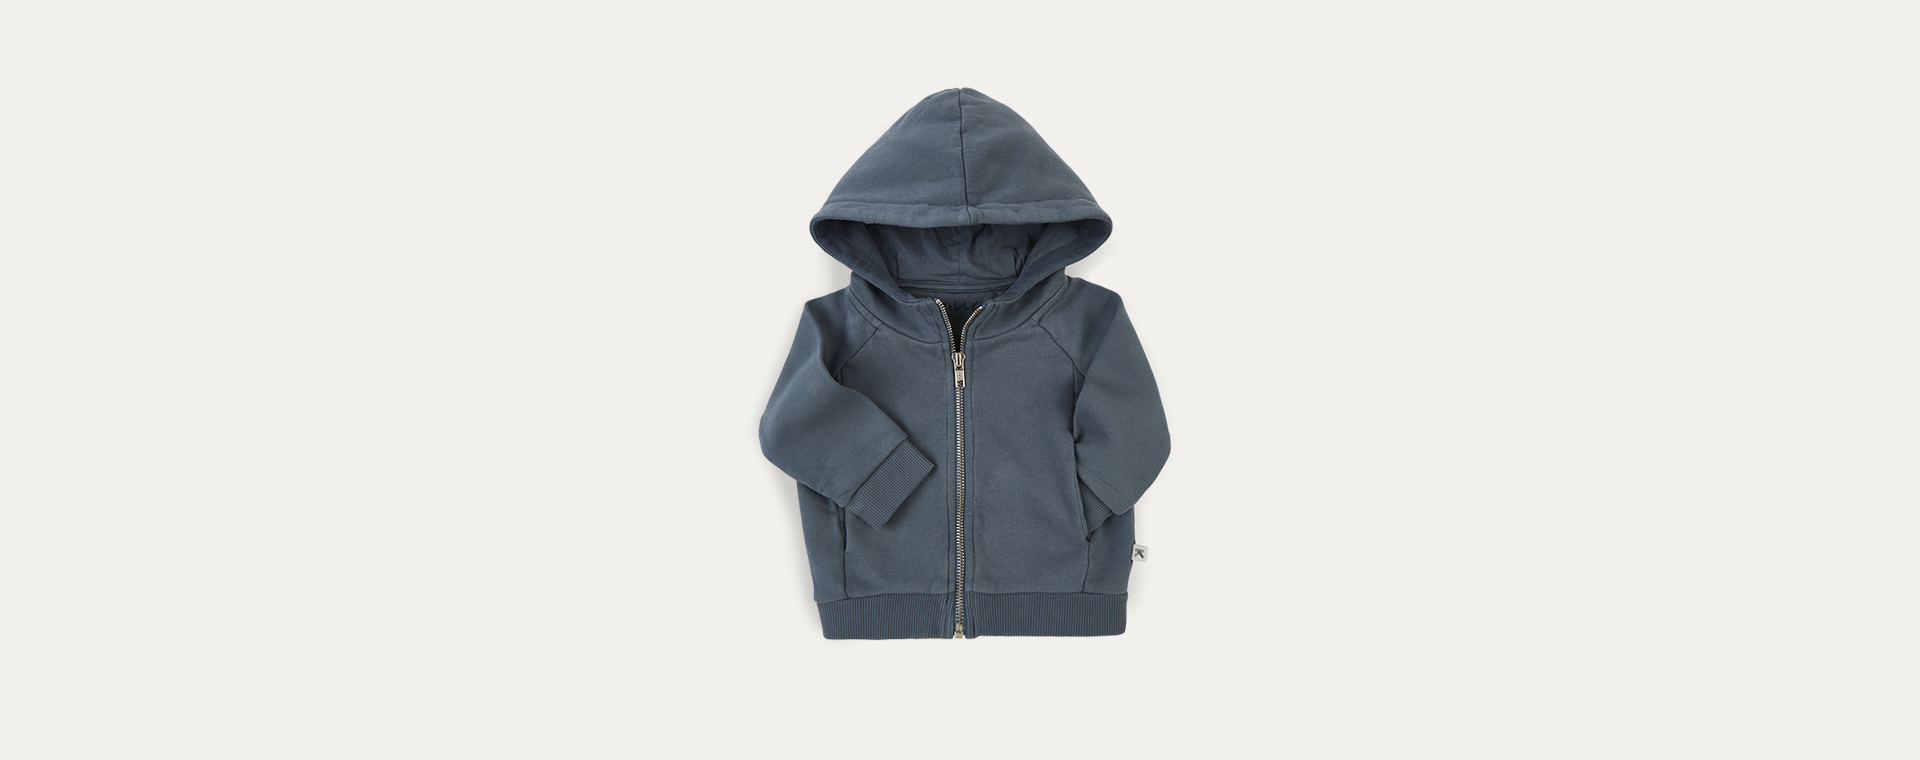 Teal KIDLY Label Zip-through Hoodie